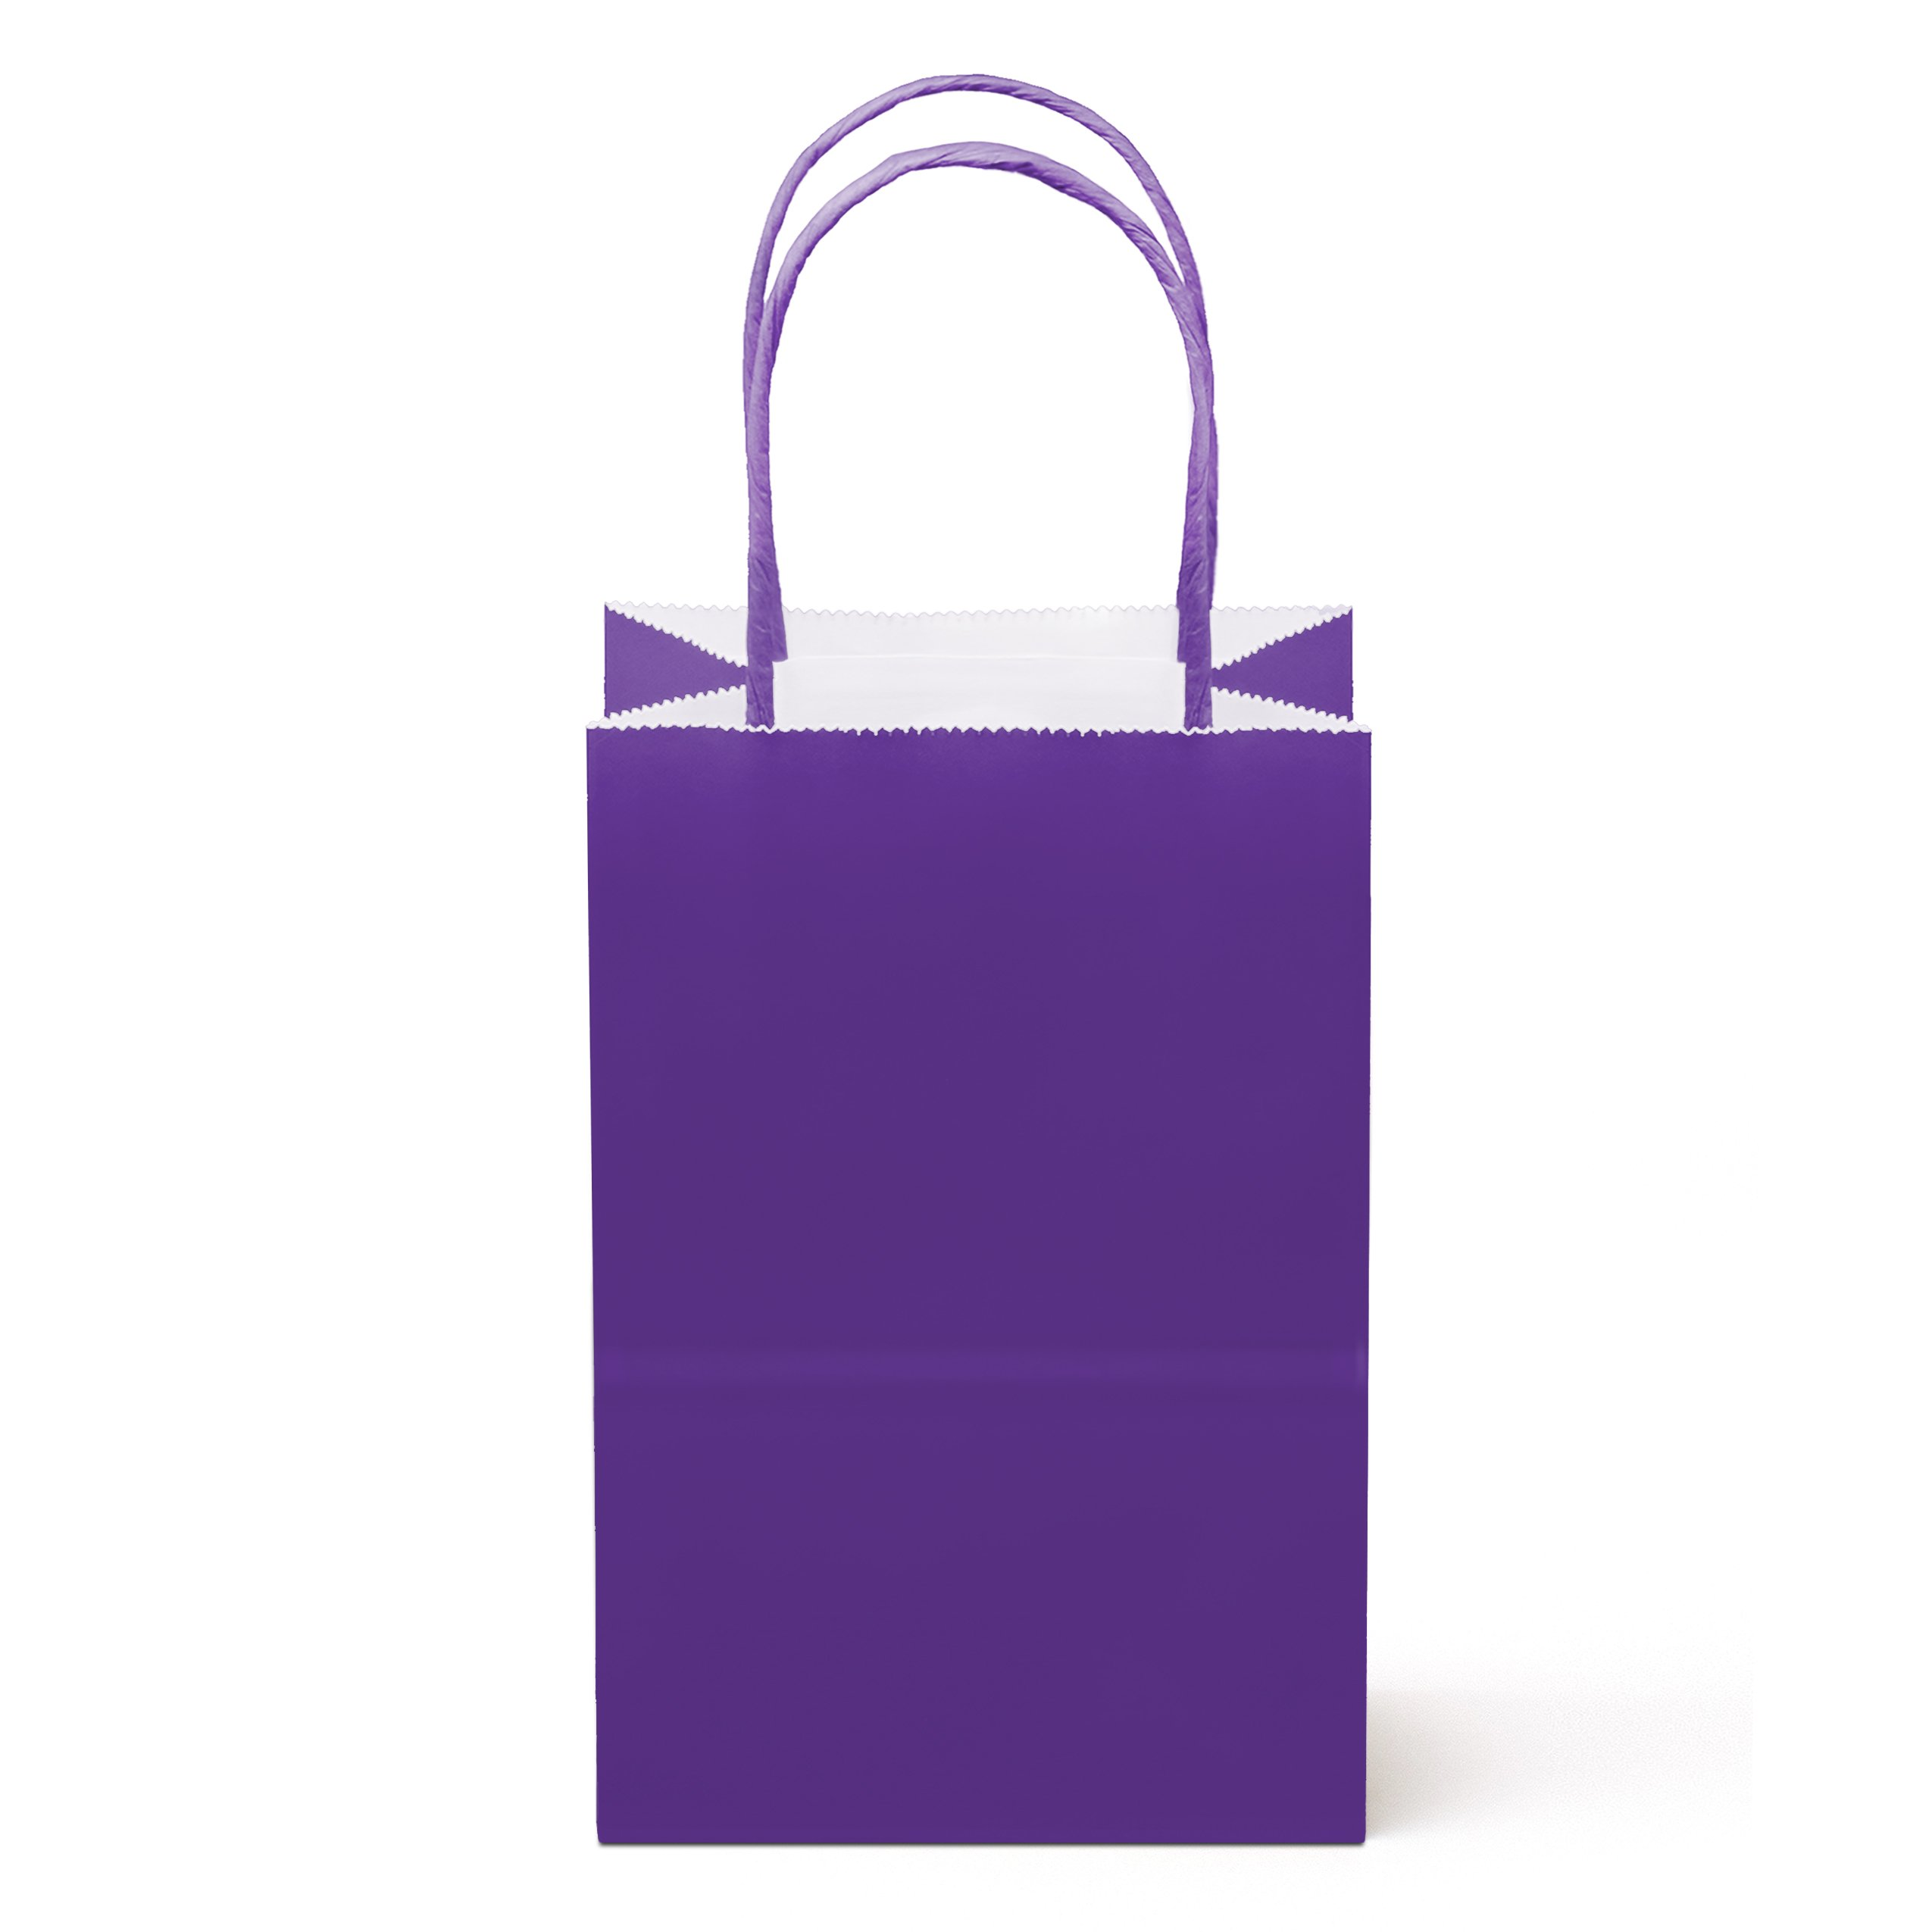 24 Counts Food Safe Paper and Ink, Natural (Biodegradable), Vivid Colored Paper Goody Kraft Bag with Colored Sturdy Handle (Small, Purple)